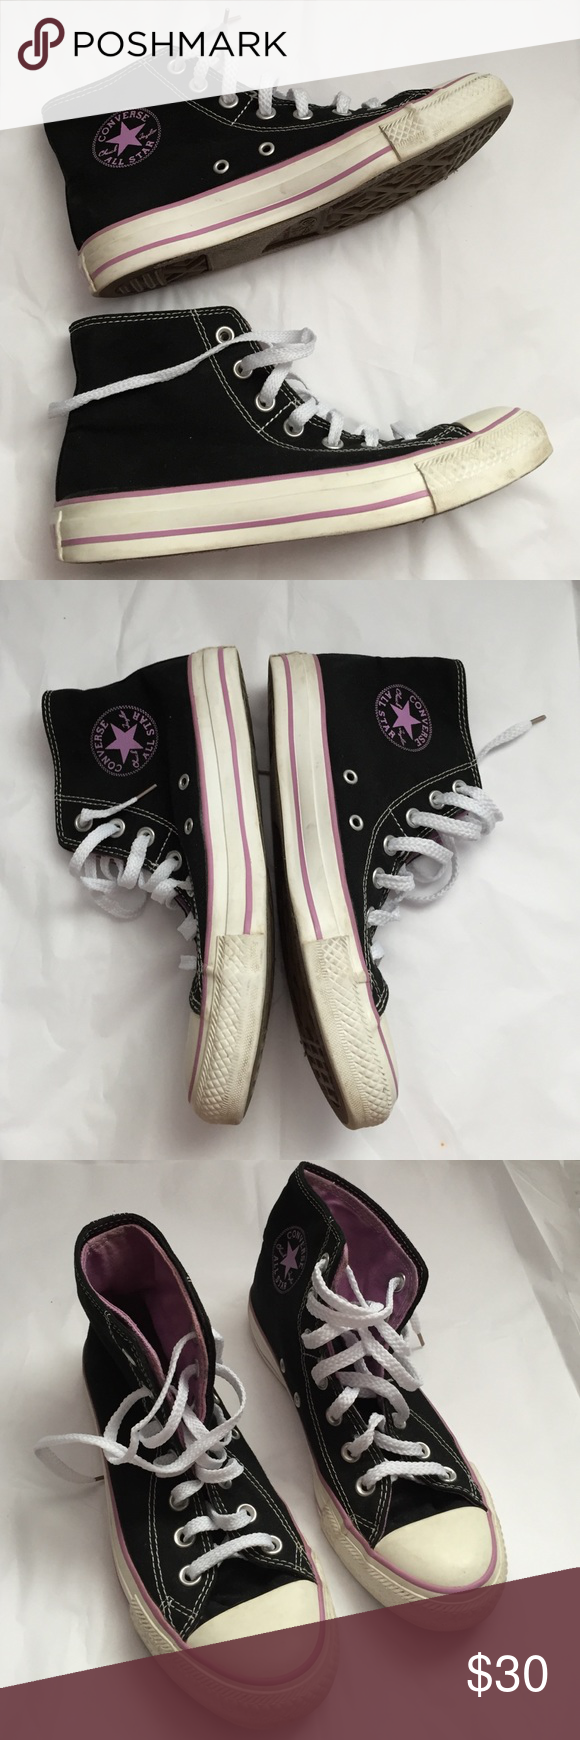 6d289e65d66c Converse All Star hi Tops! Black and purple! Size women s 7. Gently used  condition! Double tongue style! Not the original shoestrings. Converse Shoes  ...